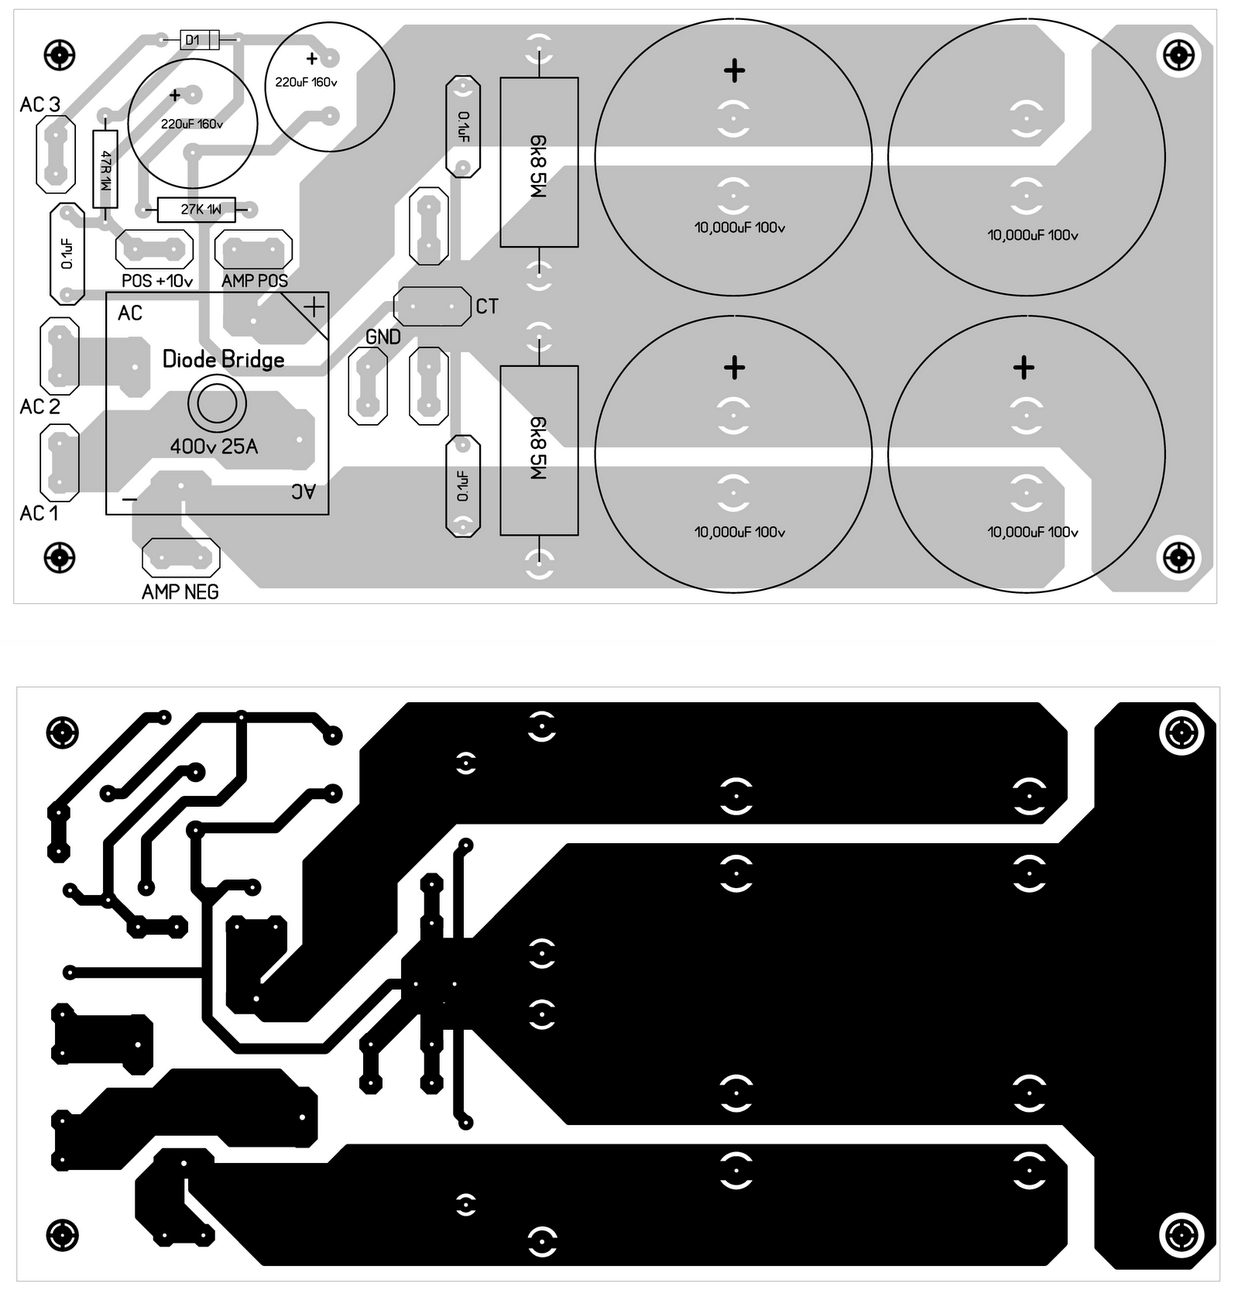 Free Wiring Diagram Car Power Amp Circuit With Pcb Design Stereo Tda2822 Audio Amplifier Suplly Layout 600 W Att